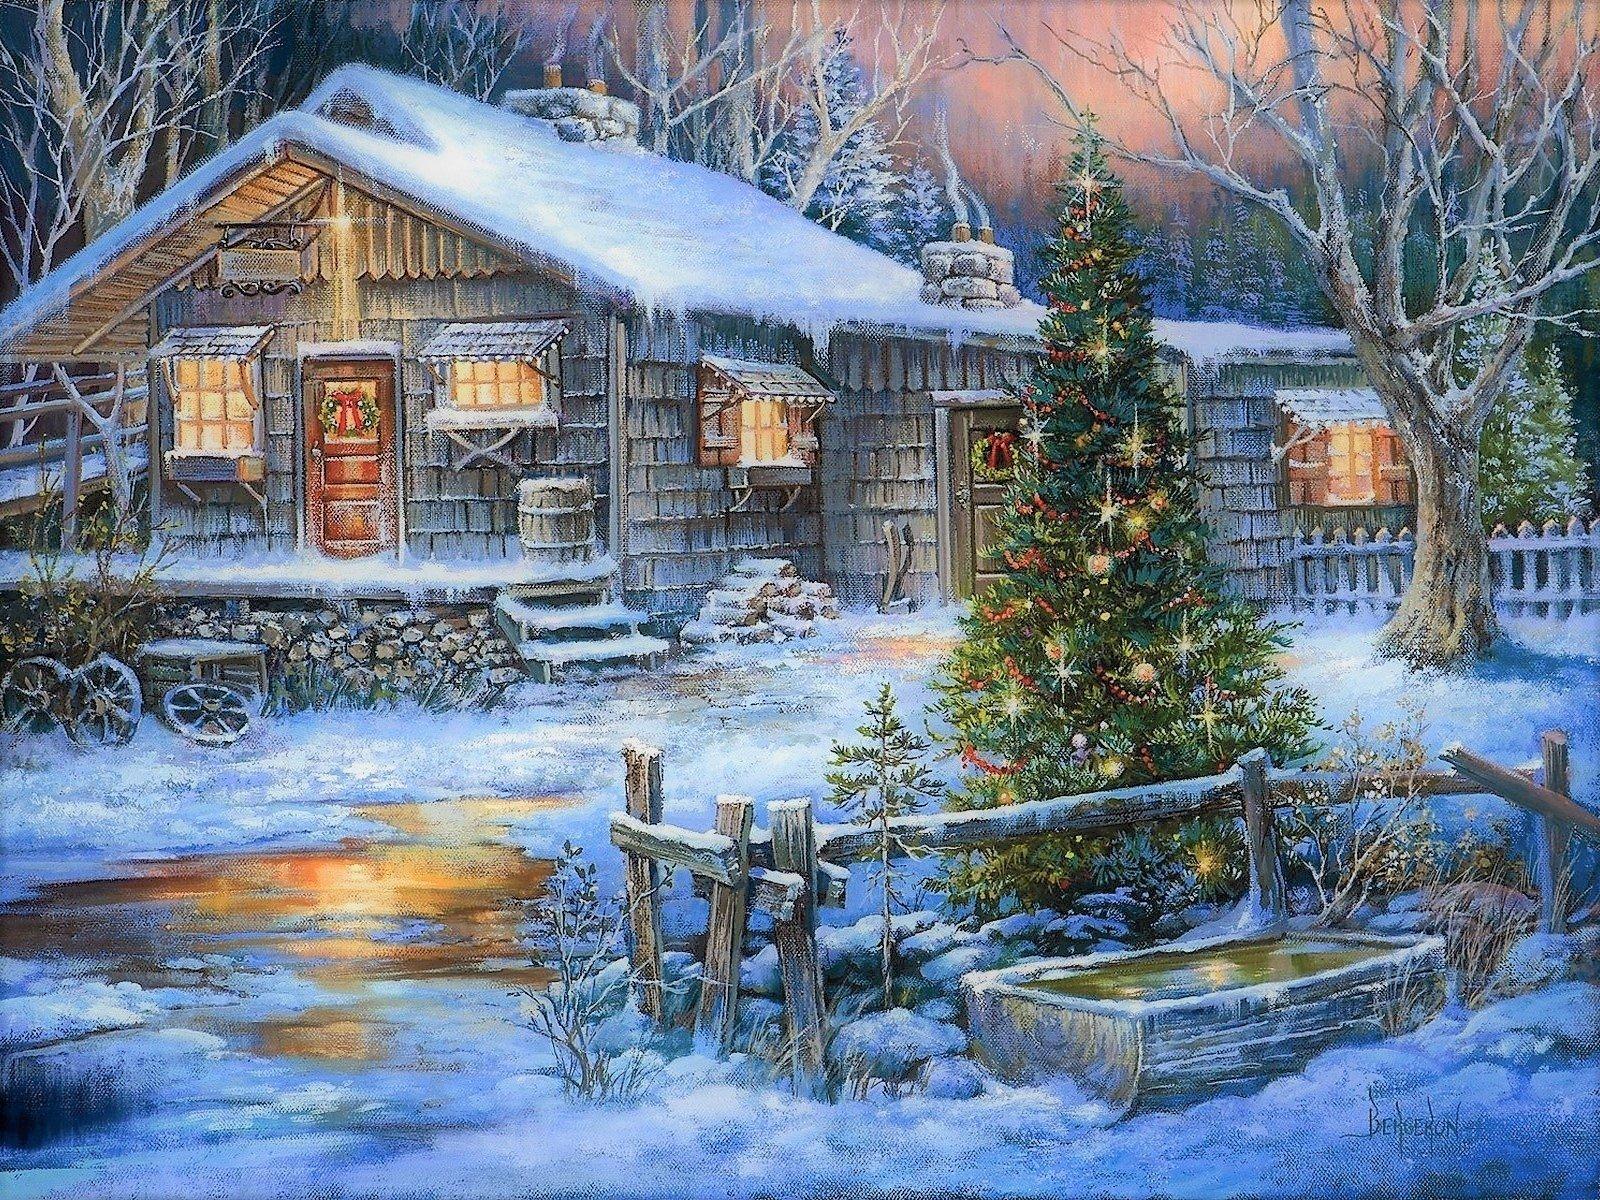 Country Christmas Background Wallpaper.A Country Christmas Wallpaper And Background Image